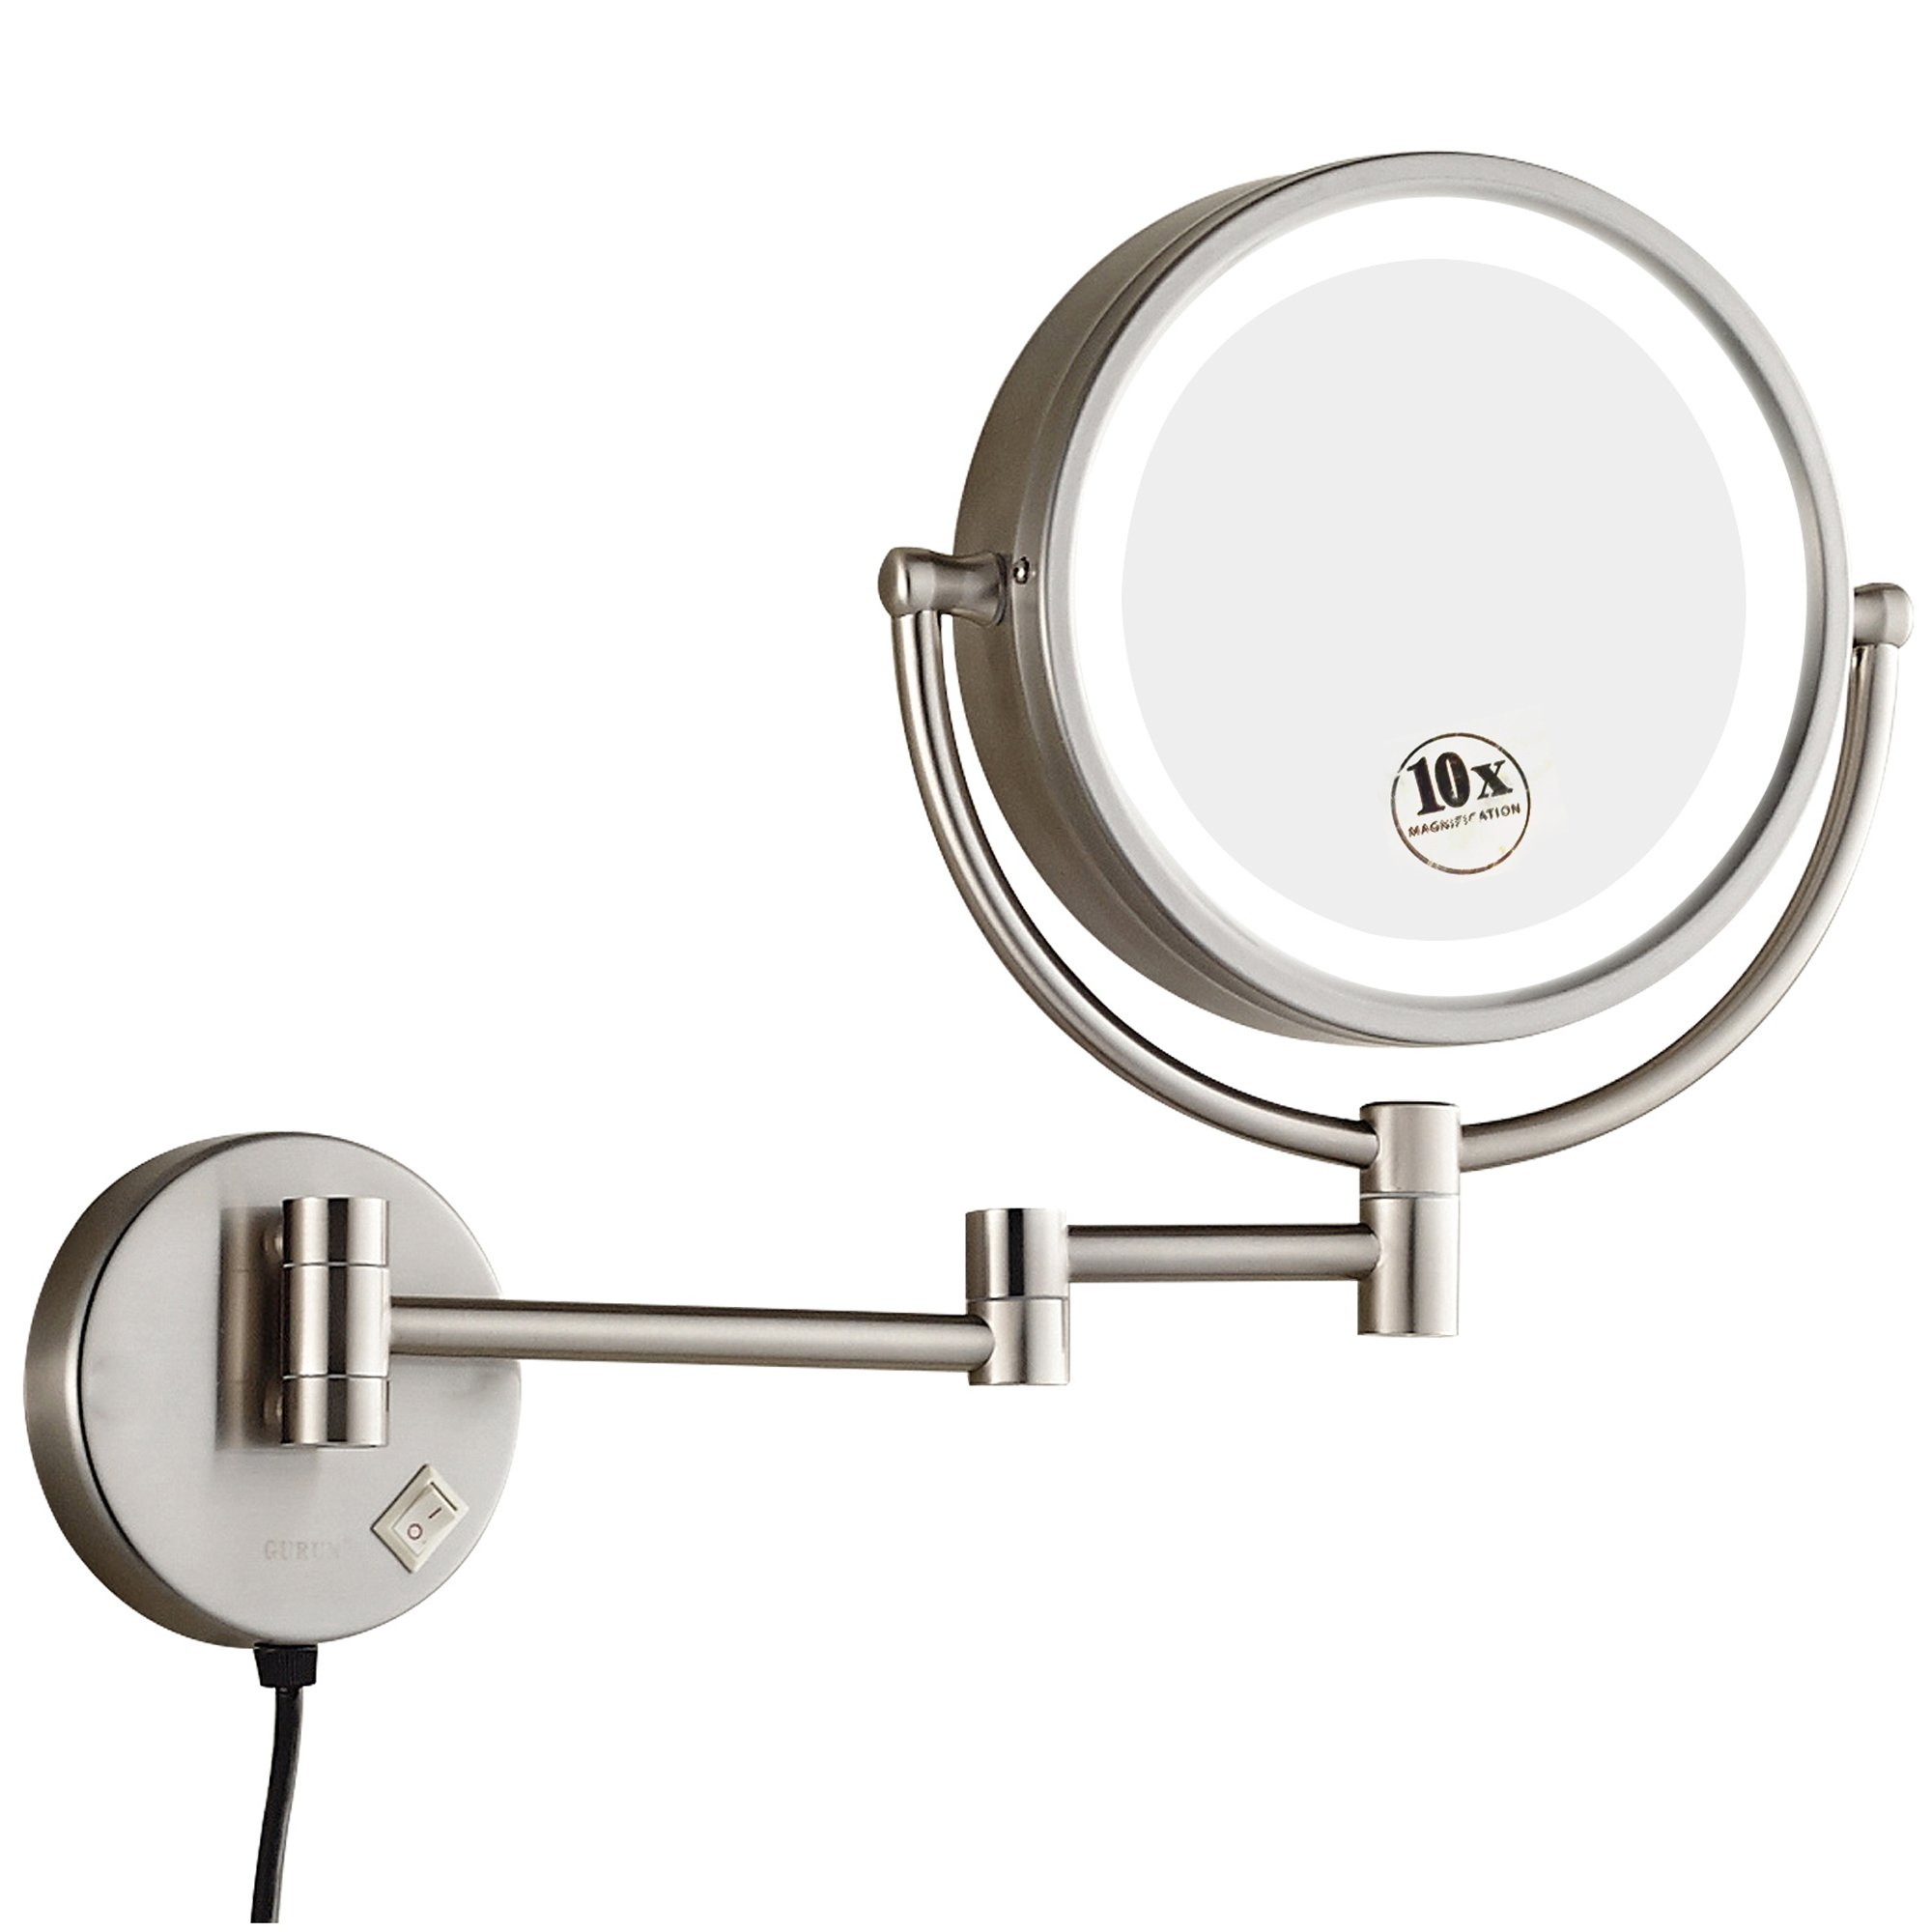 GURUN 8.5 Inch Magnifying Mirror With Led Light,10x Magnification, Brushed Nickel Finish M1809DN(8.5in,10x)